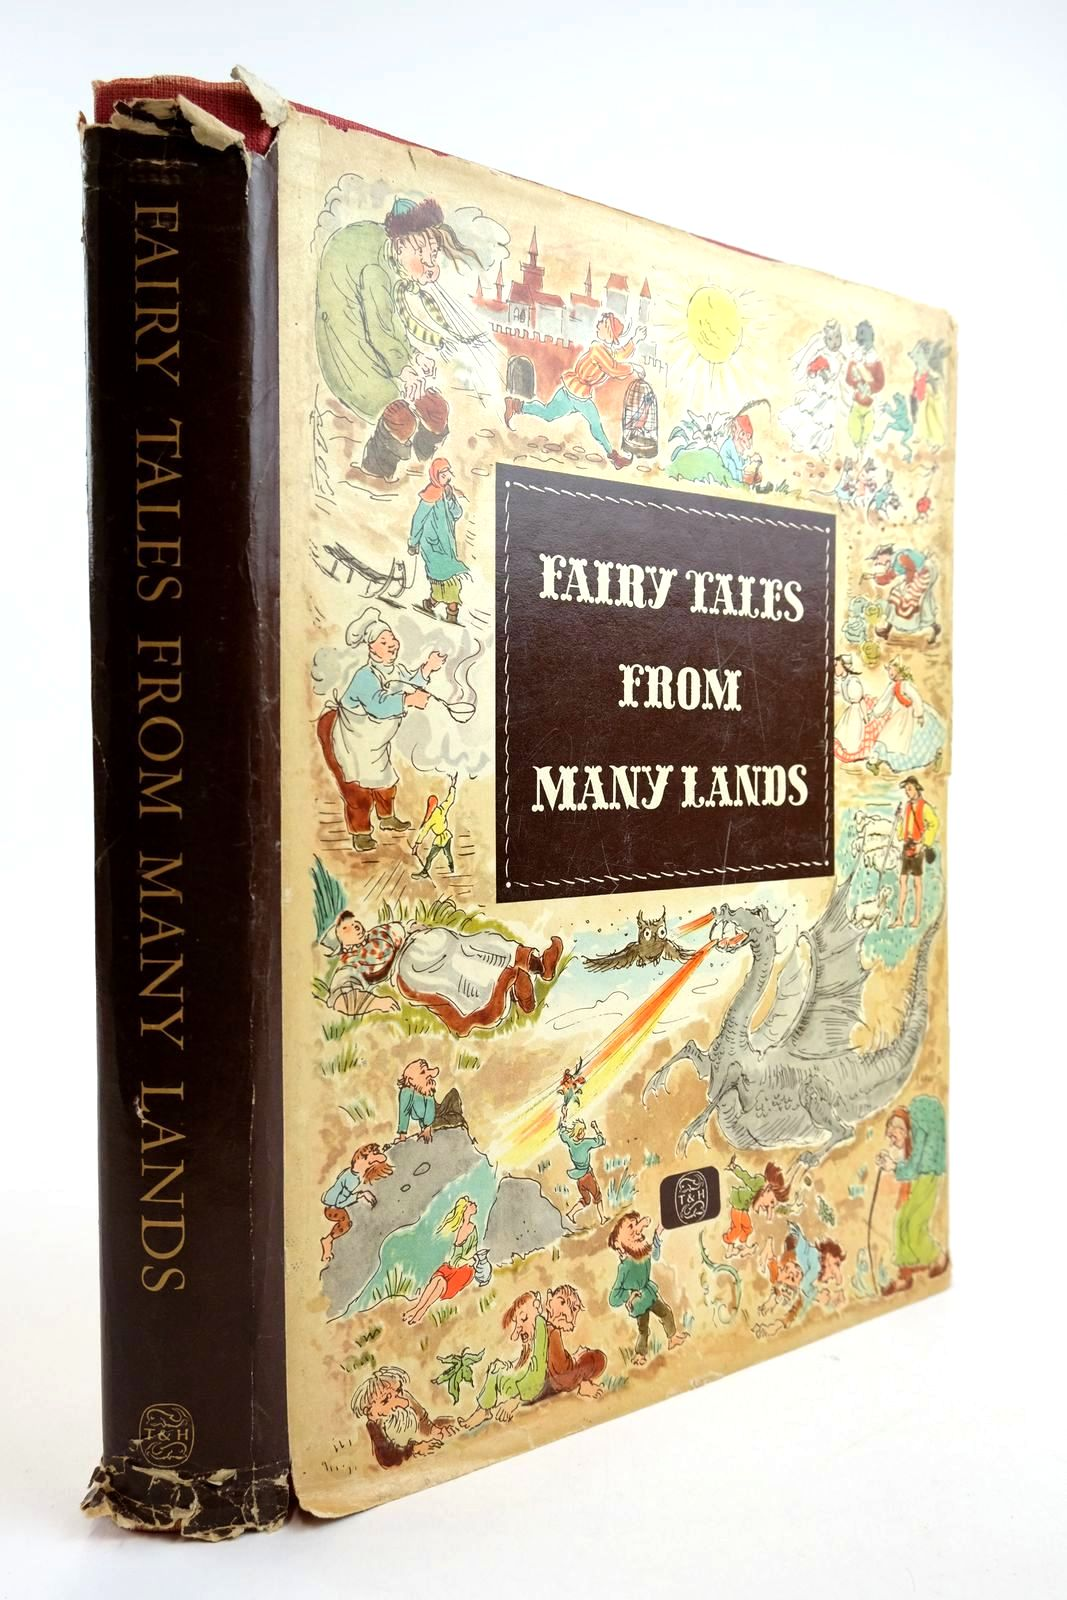 Photo of FAIRY TALES FROM MANY LANDS written by Herda, H. illustrated by Grossmann, Gerhard Koeppen, Hilde Wendorff-Weidt, Ursula published by Thames and Hudson (STOCK CODE: 2133974)  for sale by Stella & Rose's Books